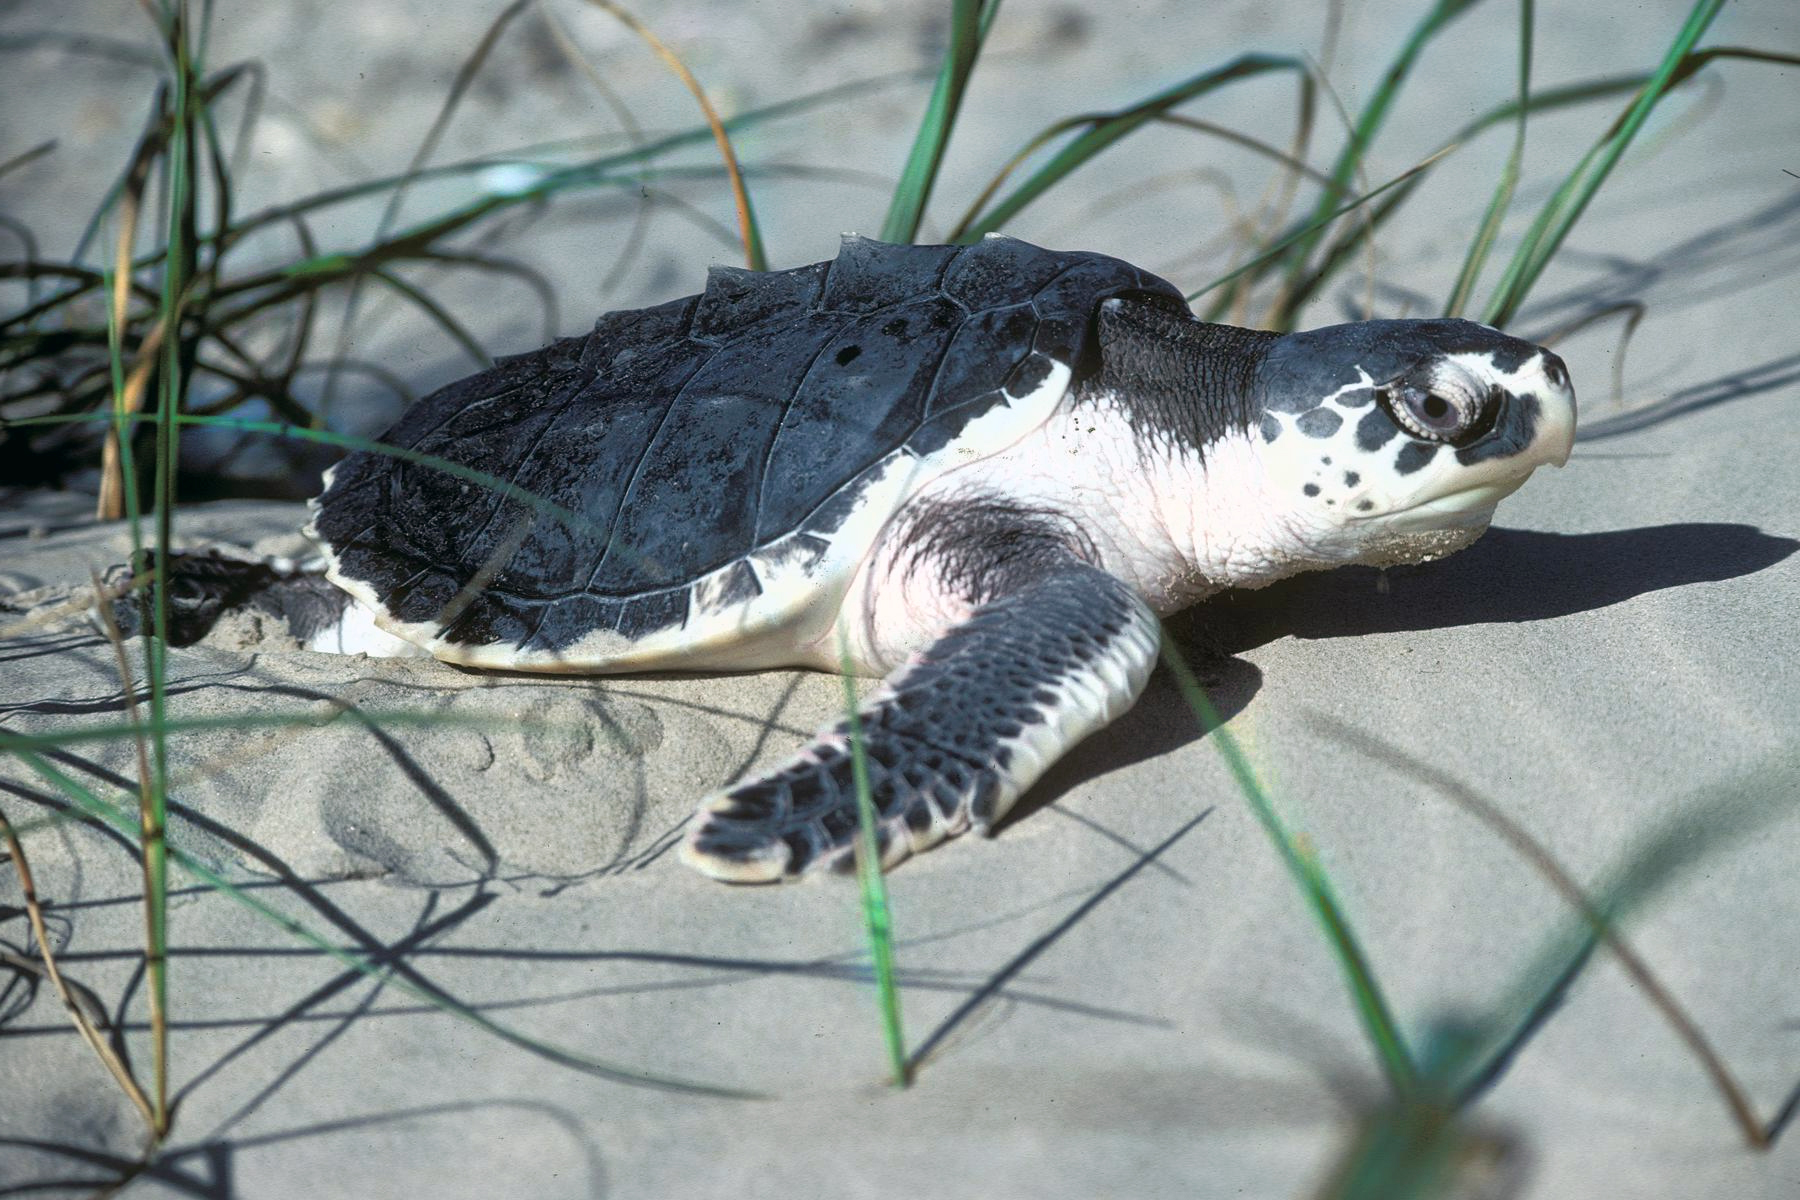 A Kemps Ridley sea turtle on the sand of a Texas beach, surrounded by grass. Image: EPA